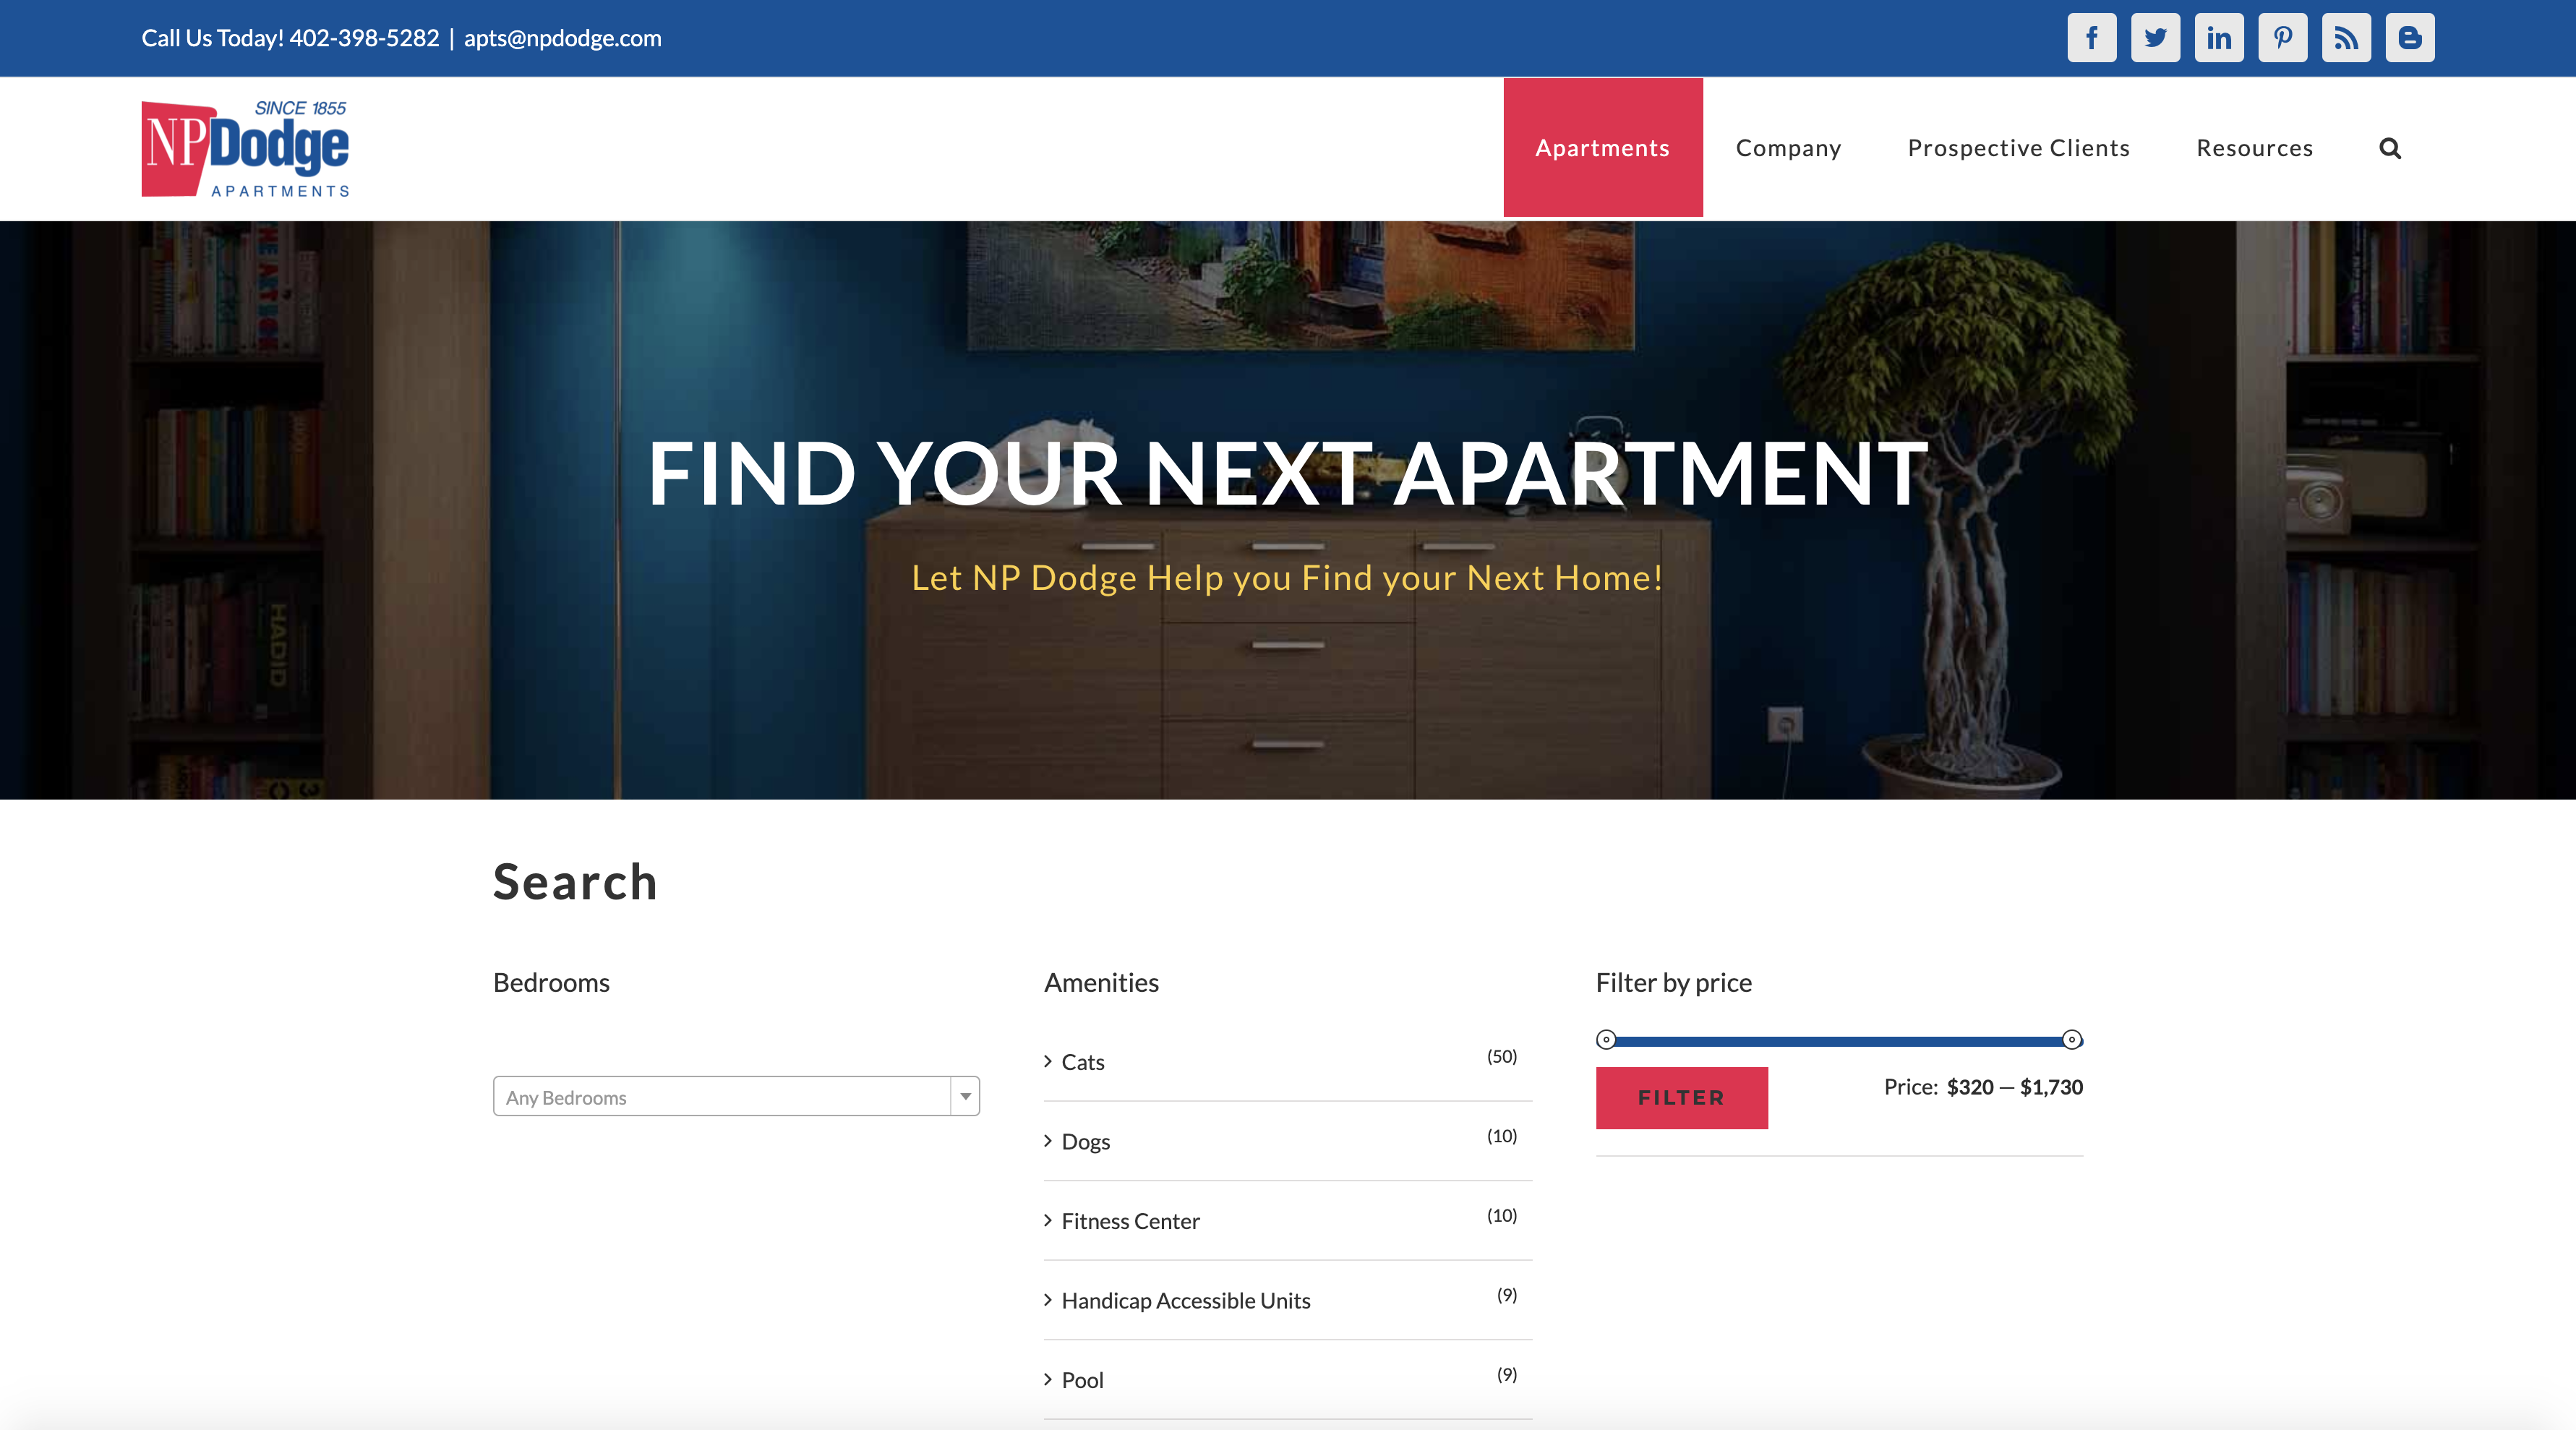 1ApartmentSearch